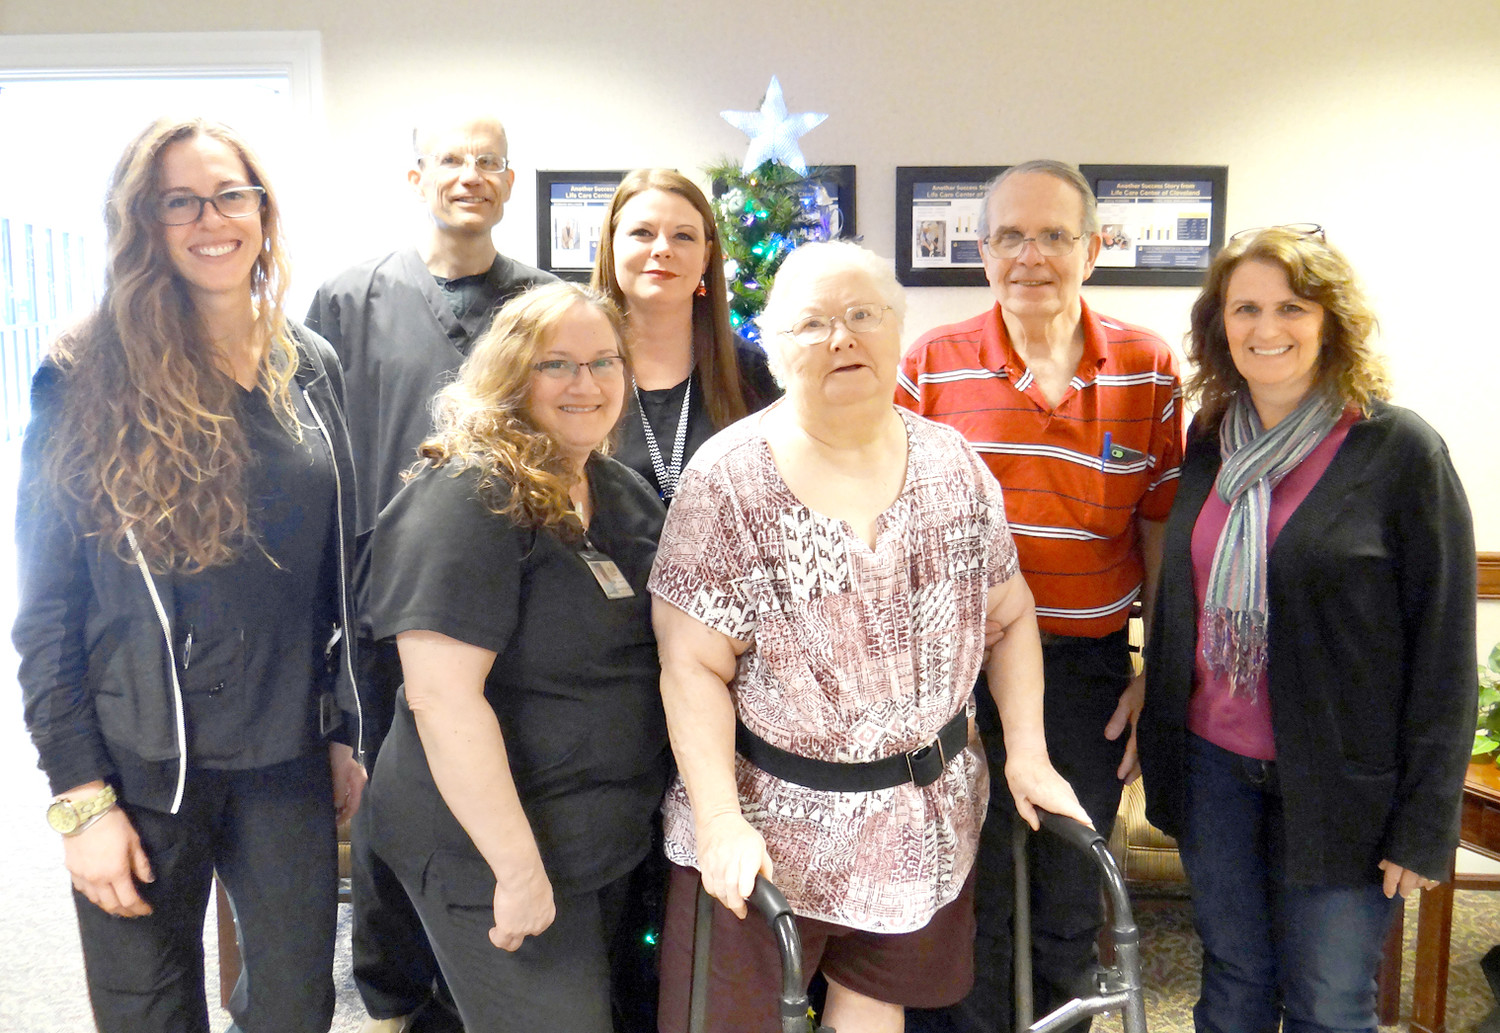 Brittney Furgerson, speech therapist; Rocco Sarli, physical therapist; Kelly Newbould, physical therapist assistant; Aundrea Davis, occupational therapist assistant; Norma Sue Betty; her husband, Bob; and her daughter, Cindy Boler, pose for a photo at Life Care Center of Cleveland.